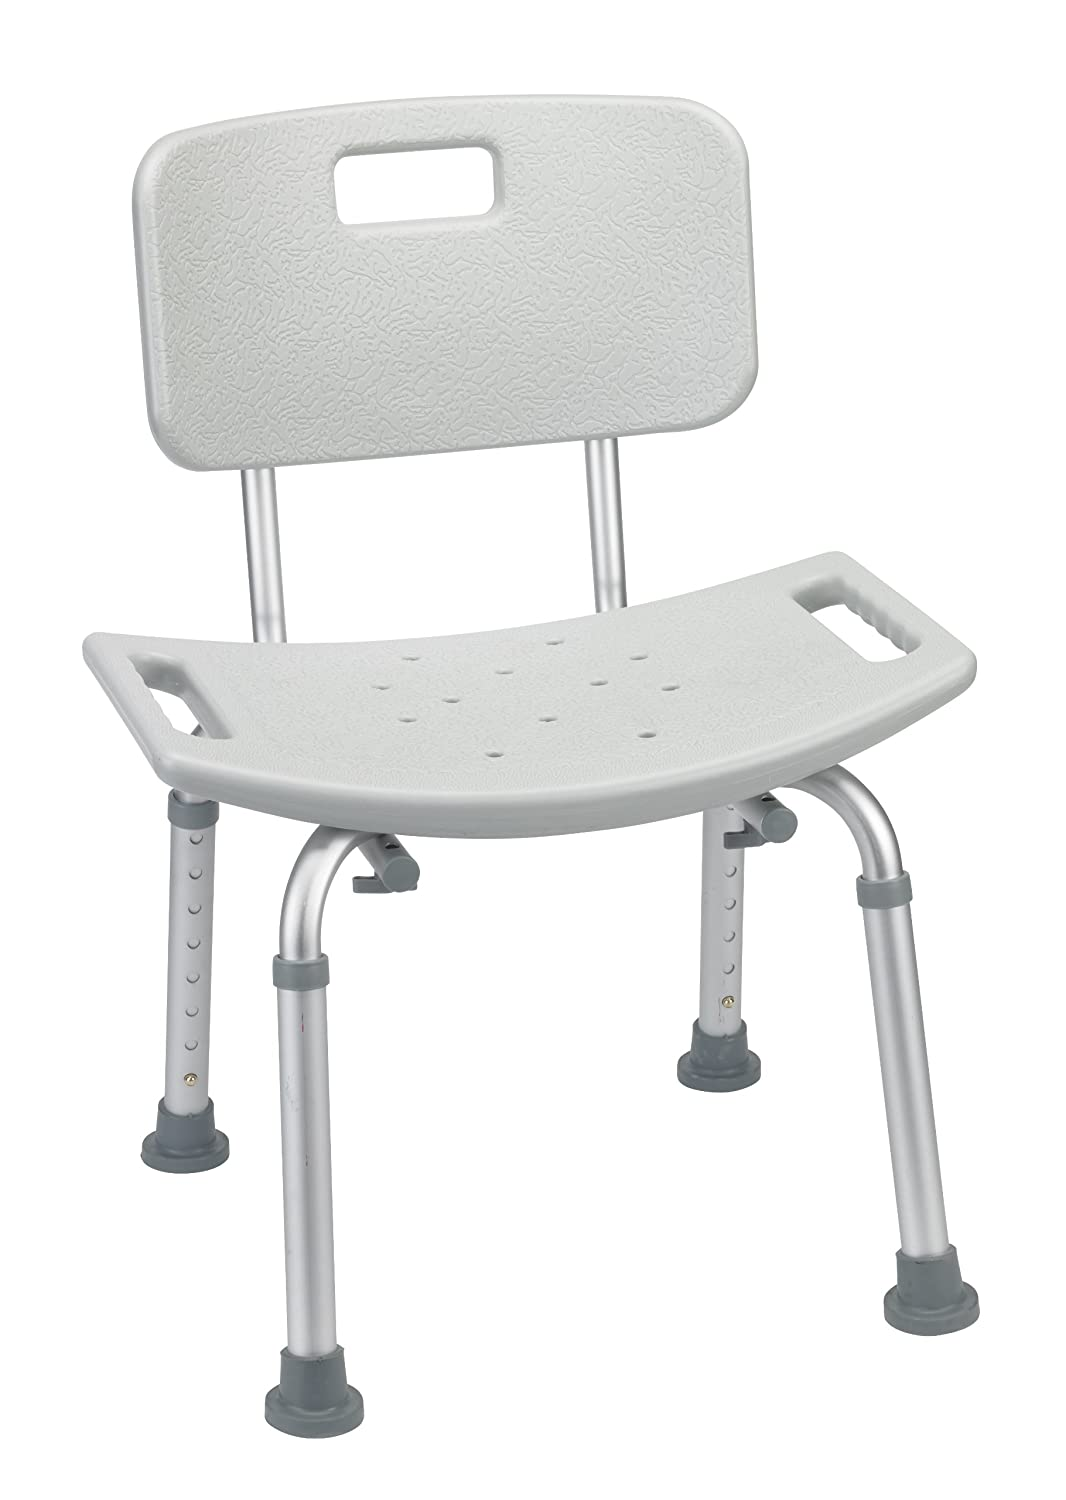 Amazon.com Bathroom Safety Shower Tub Bench Chair with Back Grey Health u0026 Personal Care  sc 1 st  Amazon.com : bath safety chair - Cheerinfomania.Com